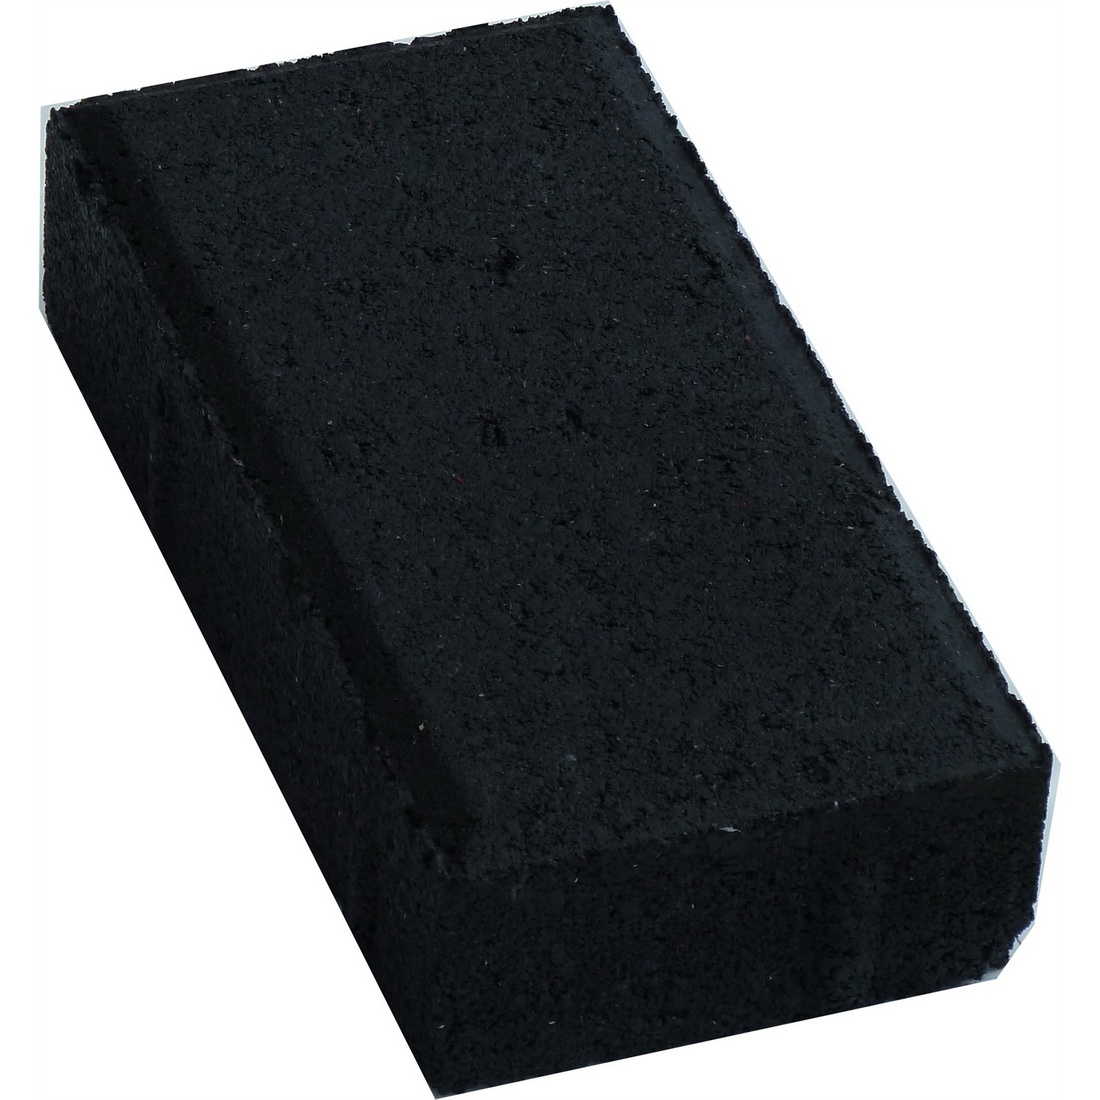 Holland Paver 80mm Black Sands